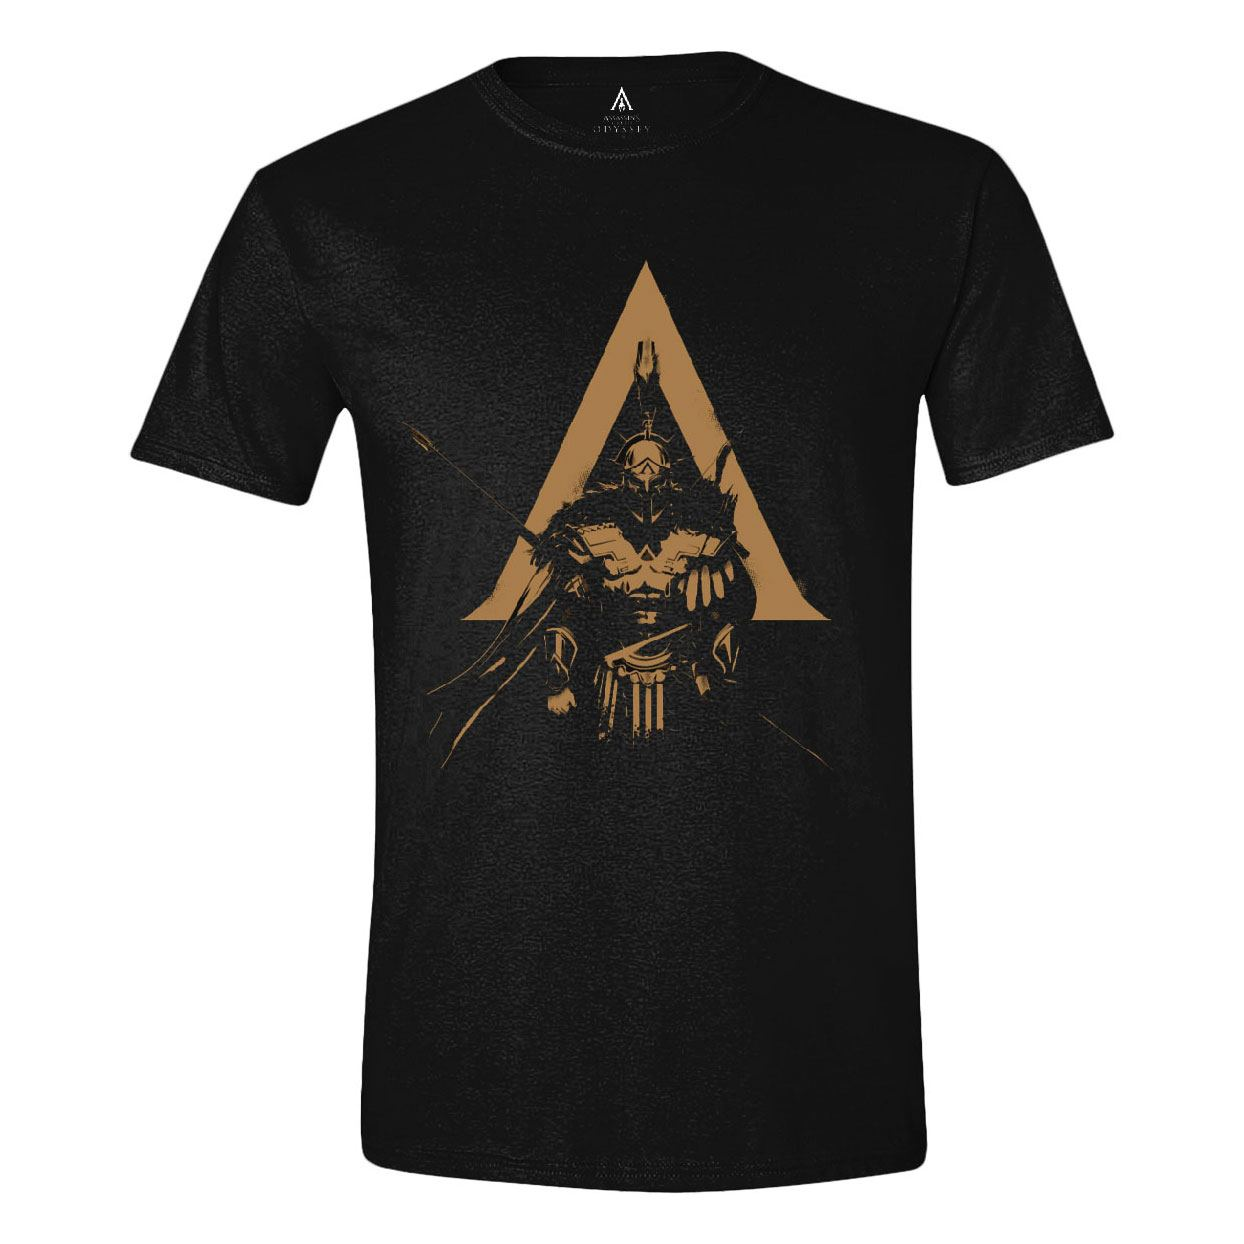 Assassin's Creed Odyssey T-Shirt Character Logo Size M